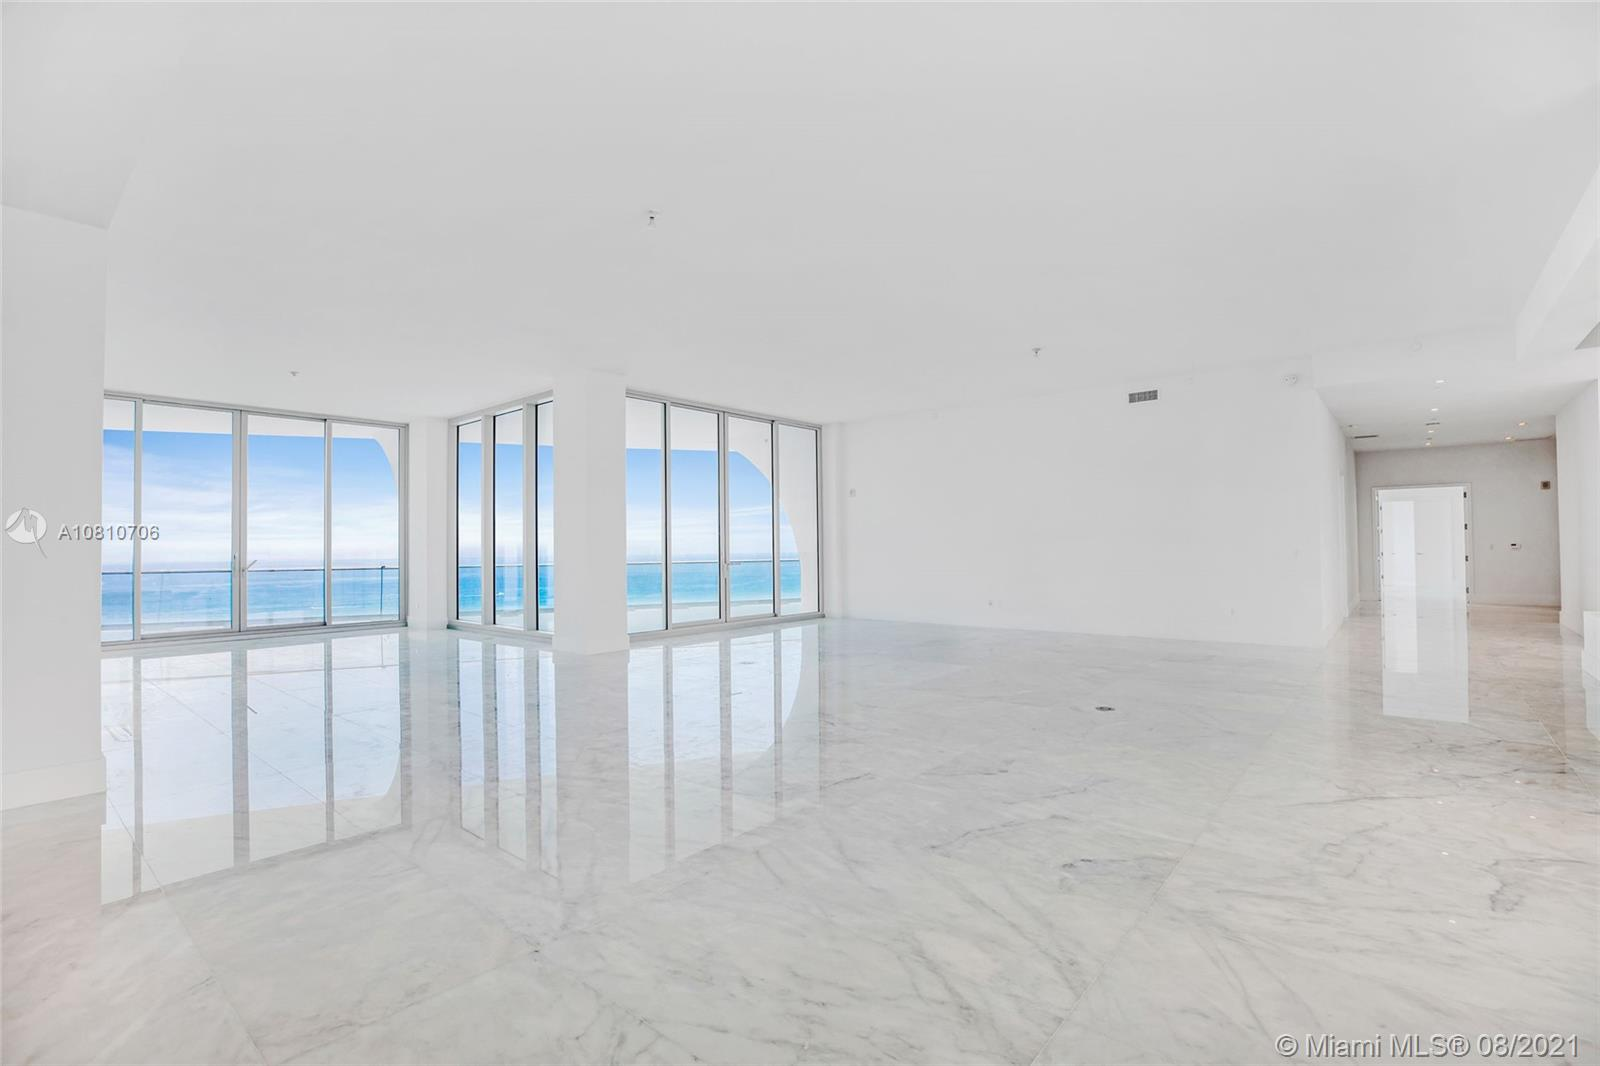 ONCE IN A LIFETIME OPPORTUNITY: HUGE PRICE REDUCTION ! OVER $12M DISCOUNT ( ORIGINAL PRICE $32M ): PRICED TO SELL ( NOW BELOW APPRAISAL VALUE )  Walls spanning from east to west provide living spaces that offer simultaneous views of both spectacular horizons from ocean to Intracoastal waterway. This Penthouse provides a true flow-through layout designed by the french 'master of grande luxe', Pierre-Yves Rochon.   Ultra high end Marble floors throughout the entire unit.     IMPORTANT UPDATE: The correct Square Footage of this Property is 14,425 sqft of Total Area ( 9,183 sqft Interior and 5,242 sqft of the exterior area )